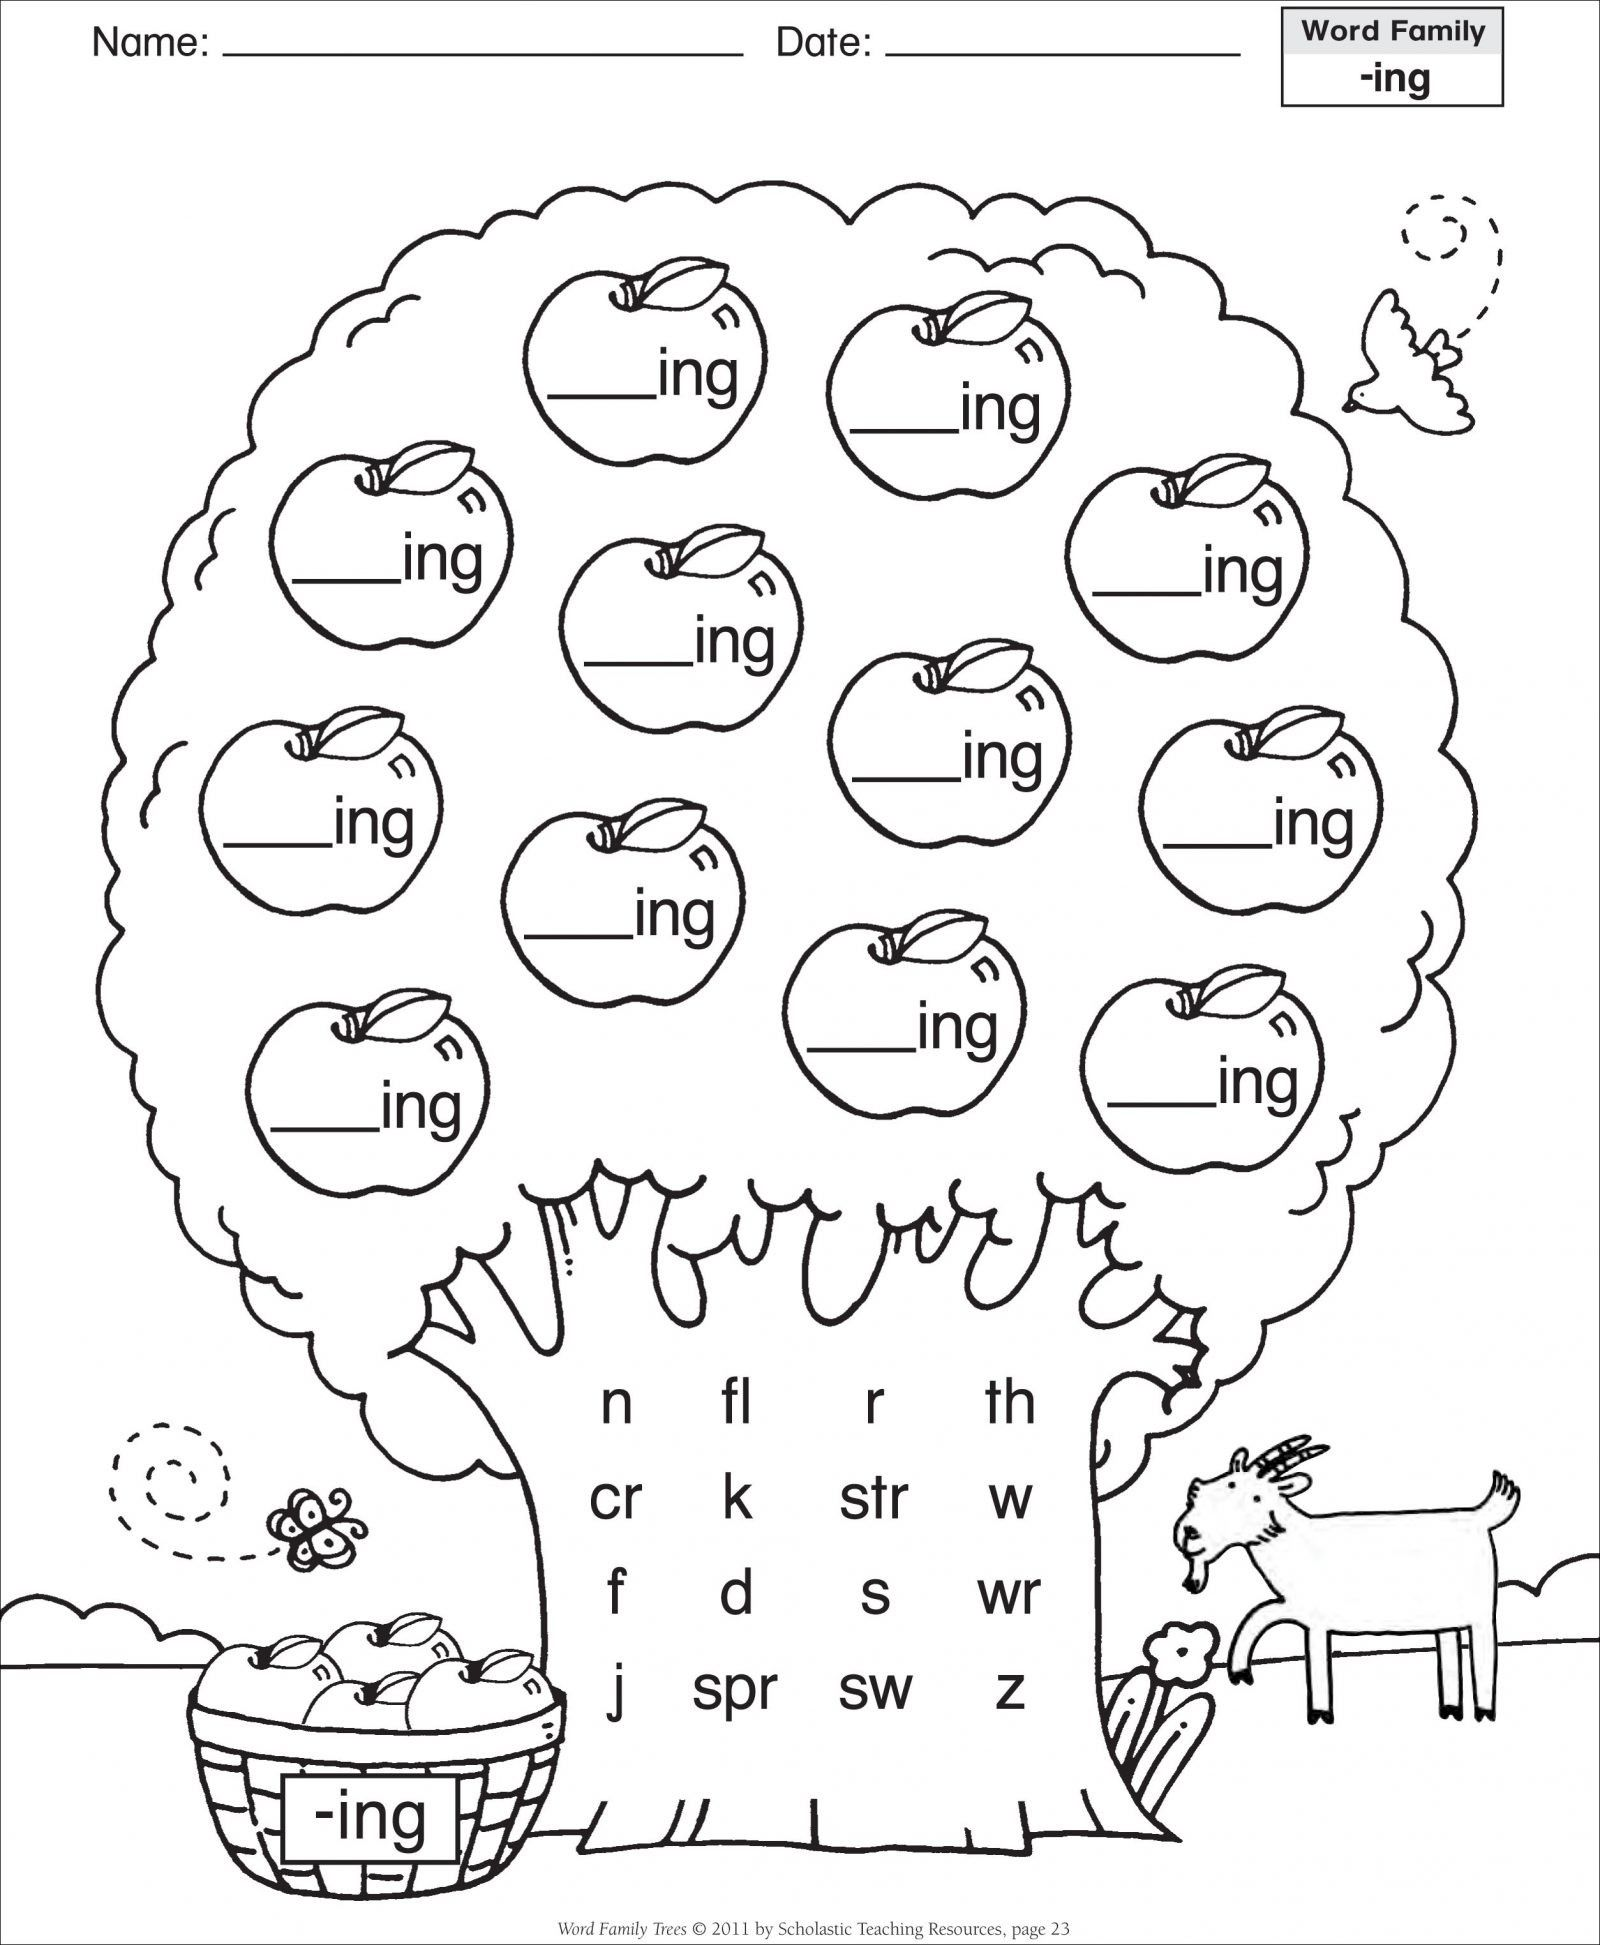 Word Families Worksheets For Preschoolers Save